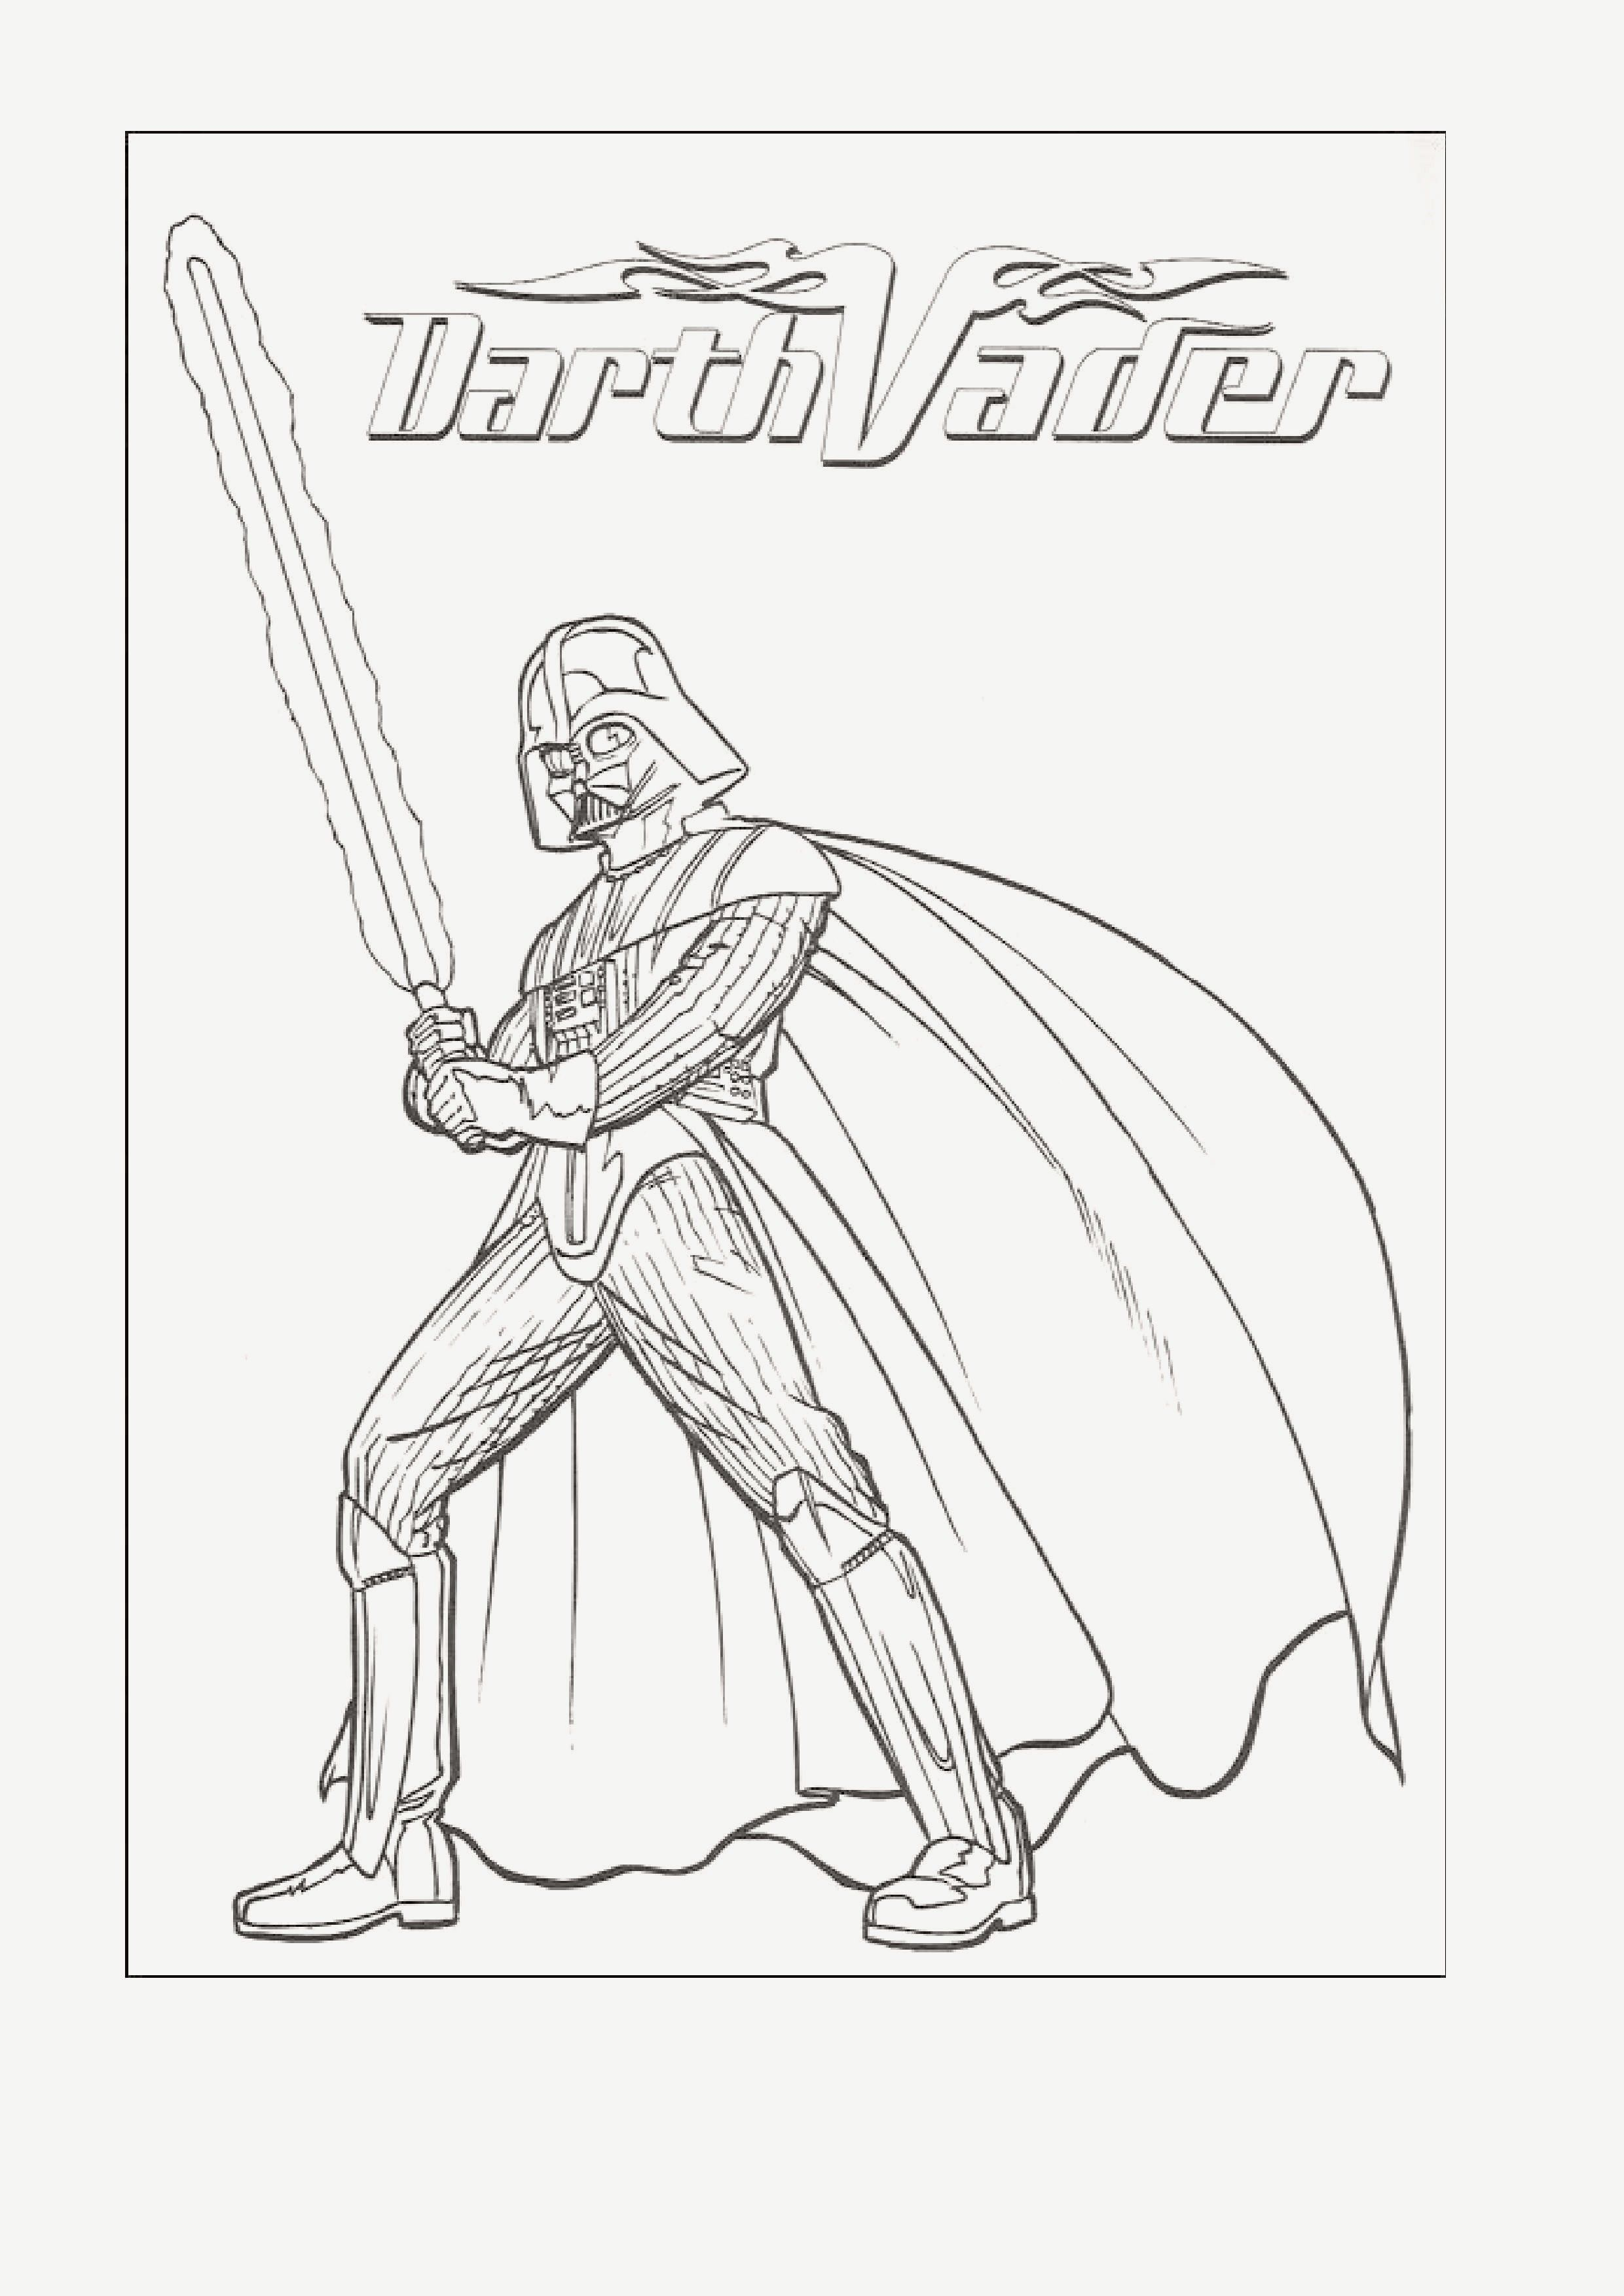 Luke Skywalker Coloring Pages Awesome Darth Vader Coloring Pages In 2020 Cat Coloring Book Coloring Pages Star Wars Colors